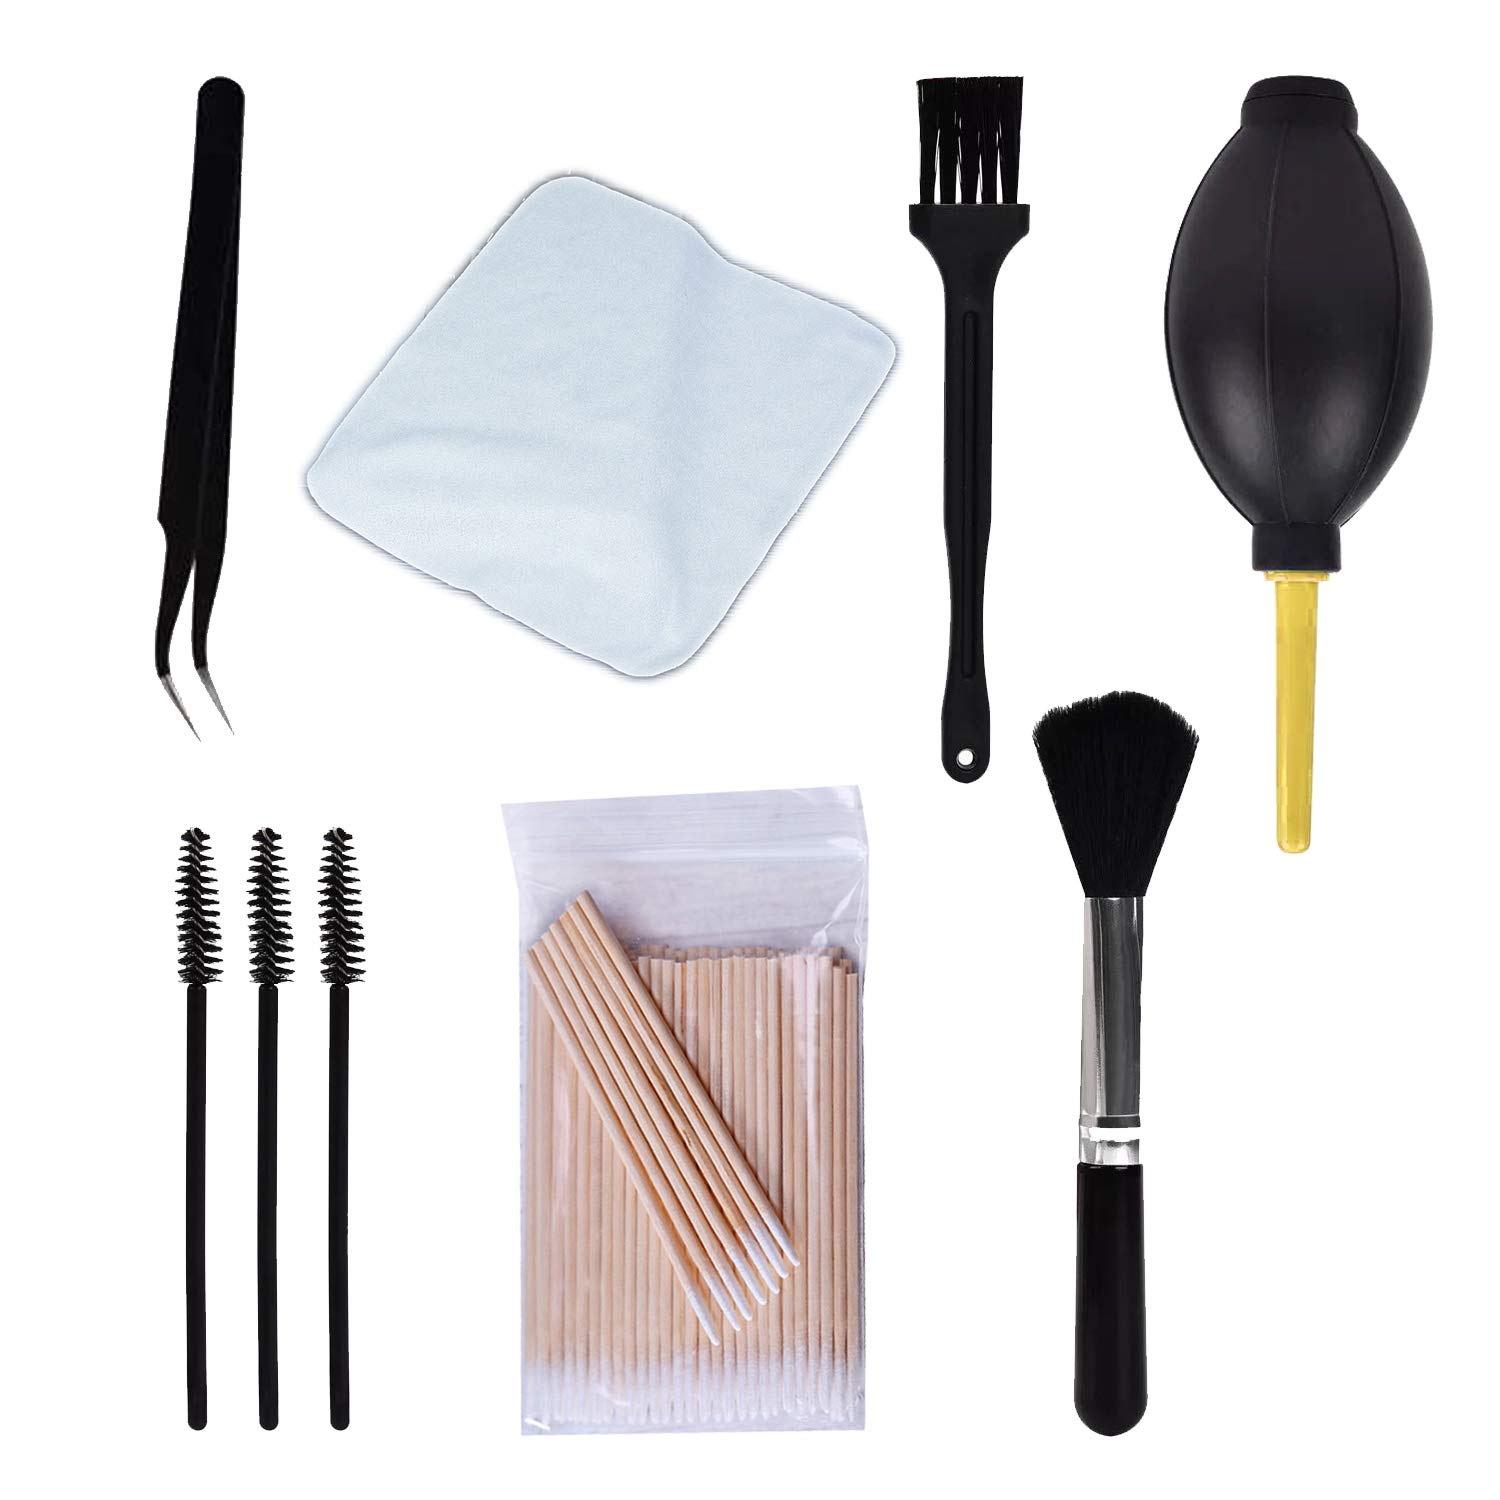 108 Pcs Cleaning Kits for Airpods, Phone Jack Charger Port Hole Cleaner Speaker Kit Professional Cleaner Tool Screen Cleaner for Cameras Keyboards Headphones